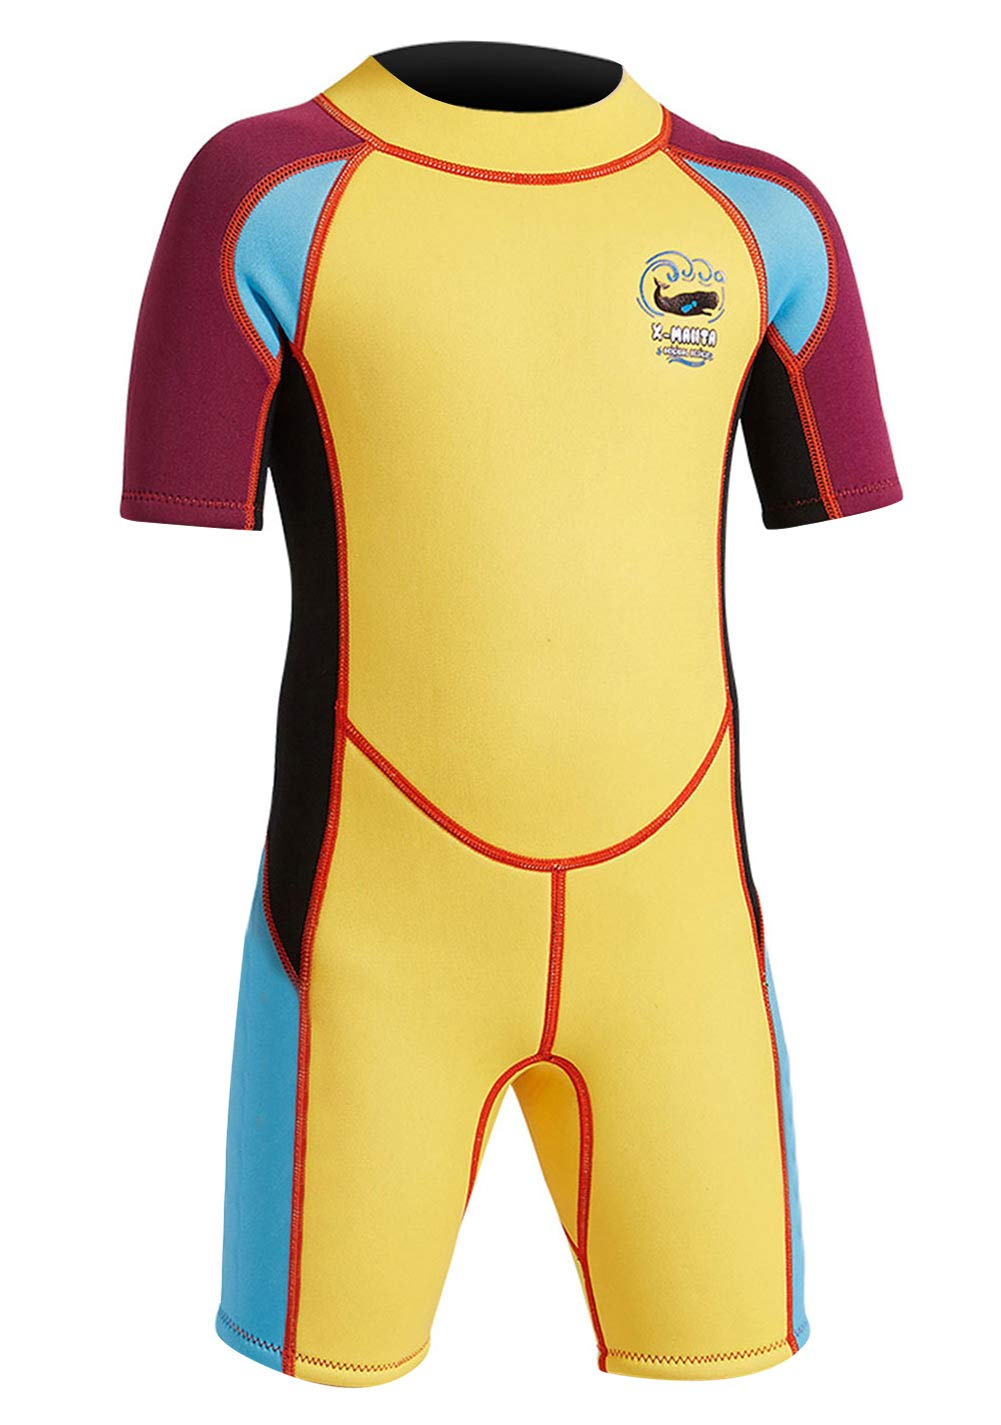 Dive & Sail Kids 2.5 MM Warm Wetsuit One Piece UV保護Shorty Suit B07CJJK8DL イエロー S(Height 37''-41'') S(Height 37''-41'')|イエロー